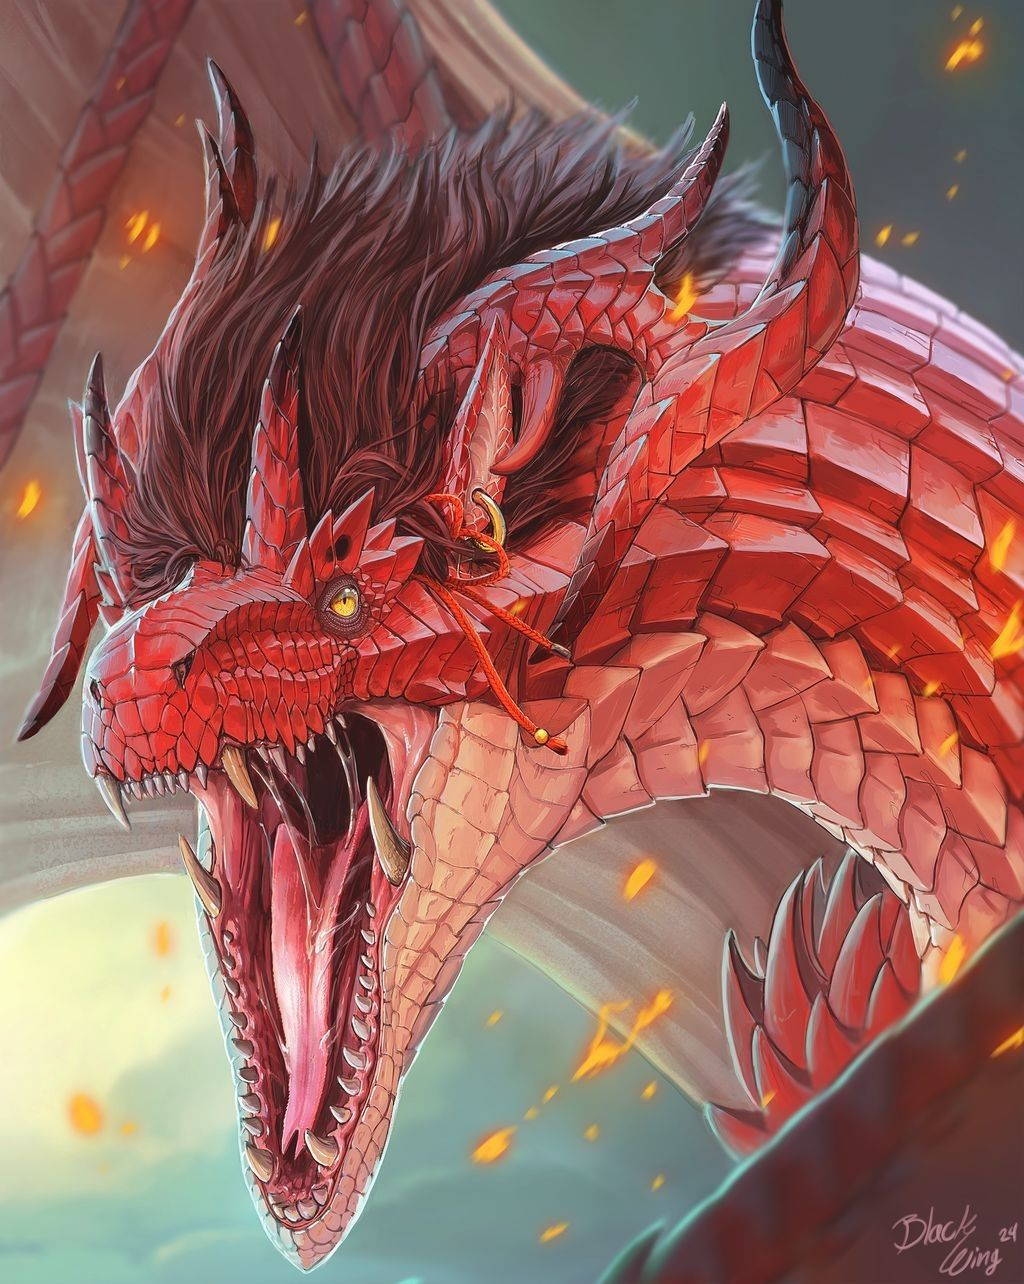 Pin By Dinei Tuinivar On Harry Potter In 2020 Realistic Dragon Drawing Eastern Dragon Realistic Dragon